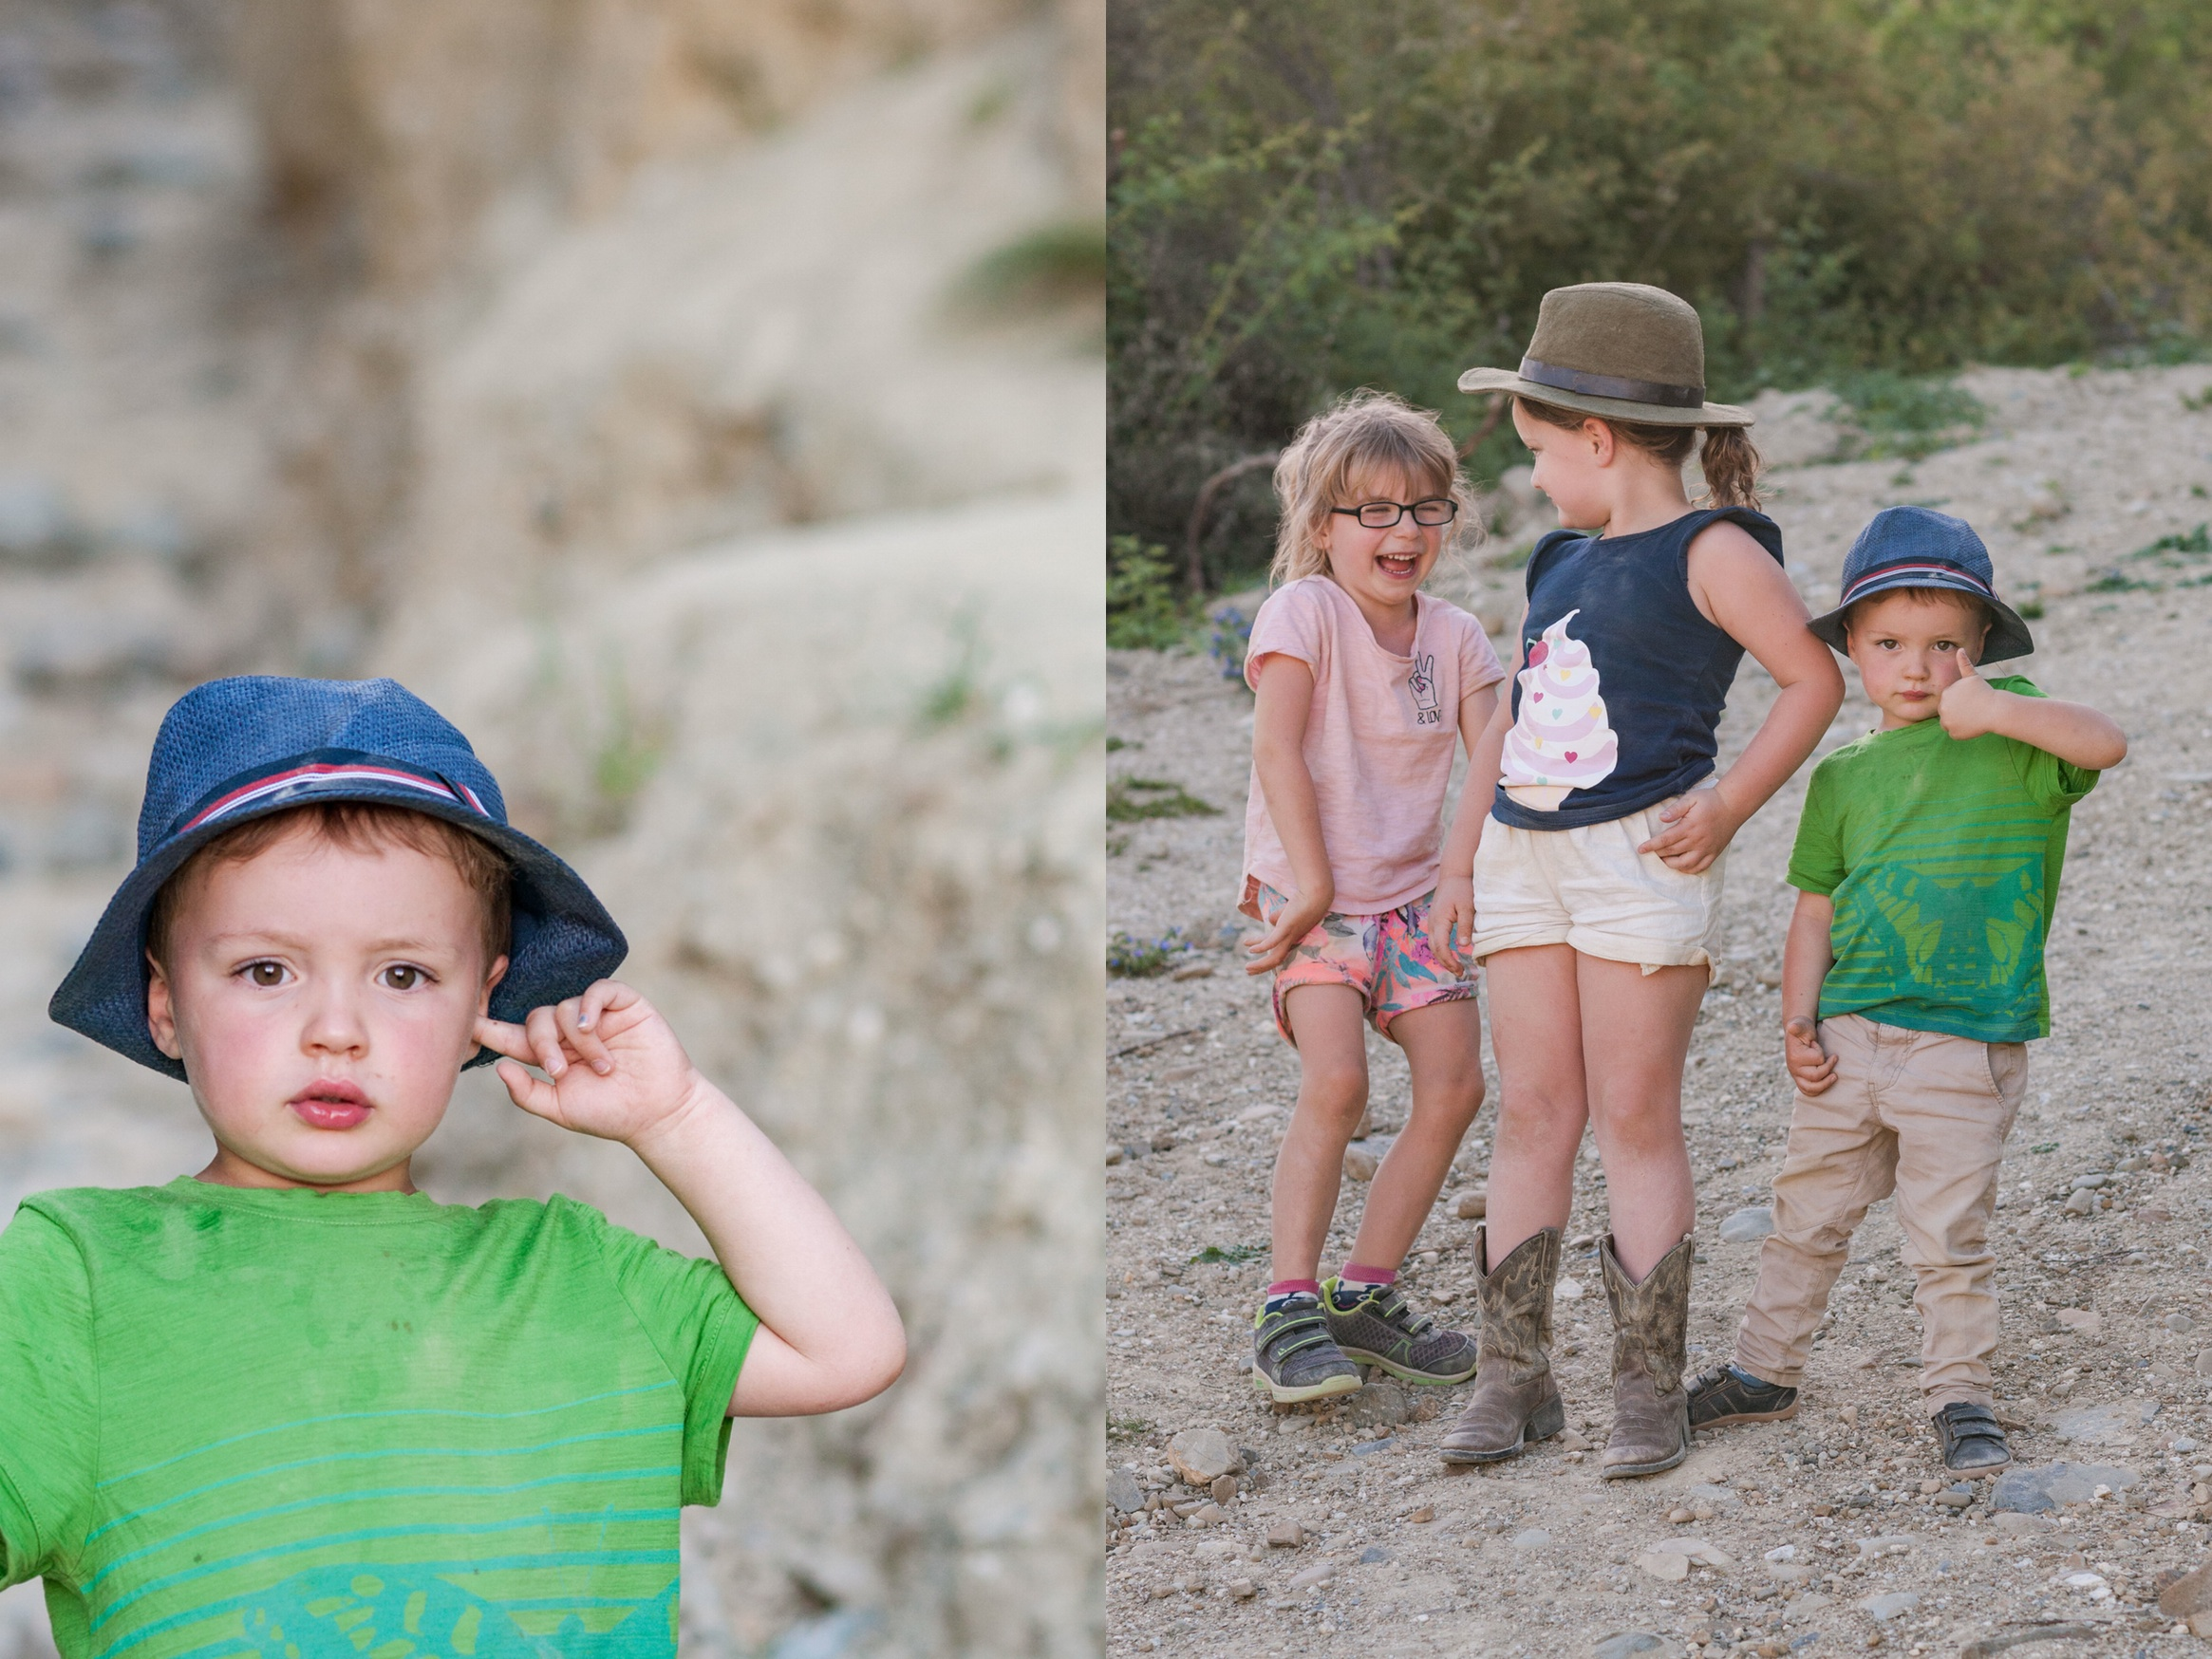 Our little cross country kiwis! Photos by  Sarah Drummond